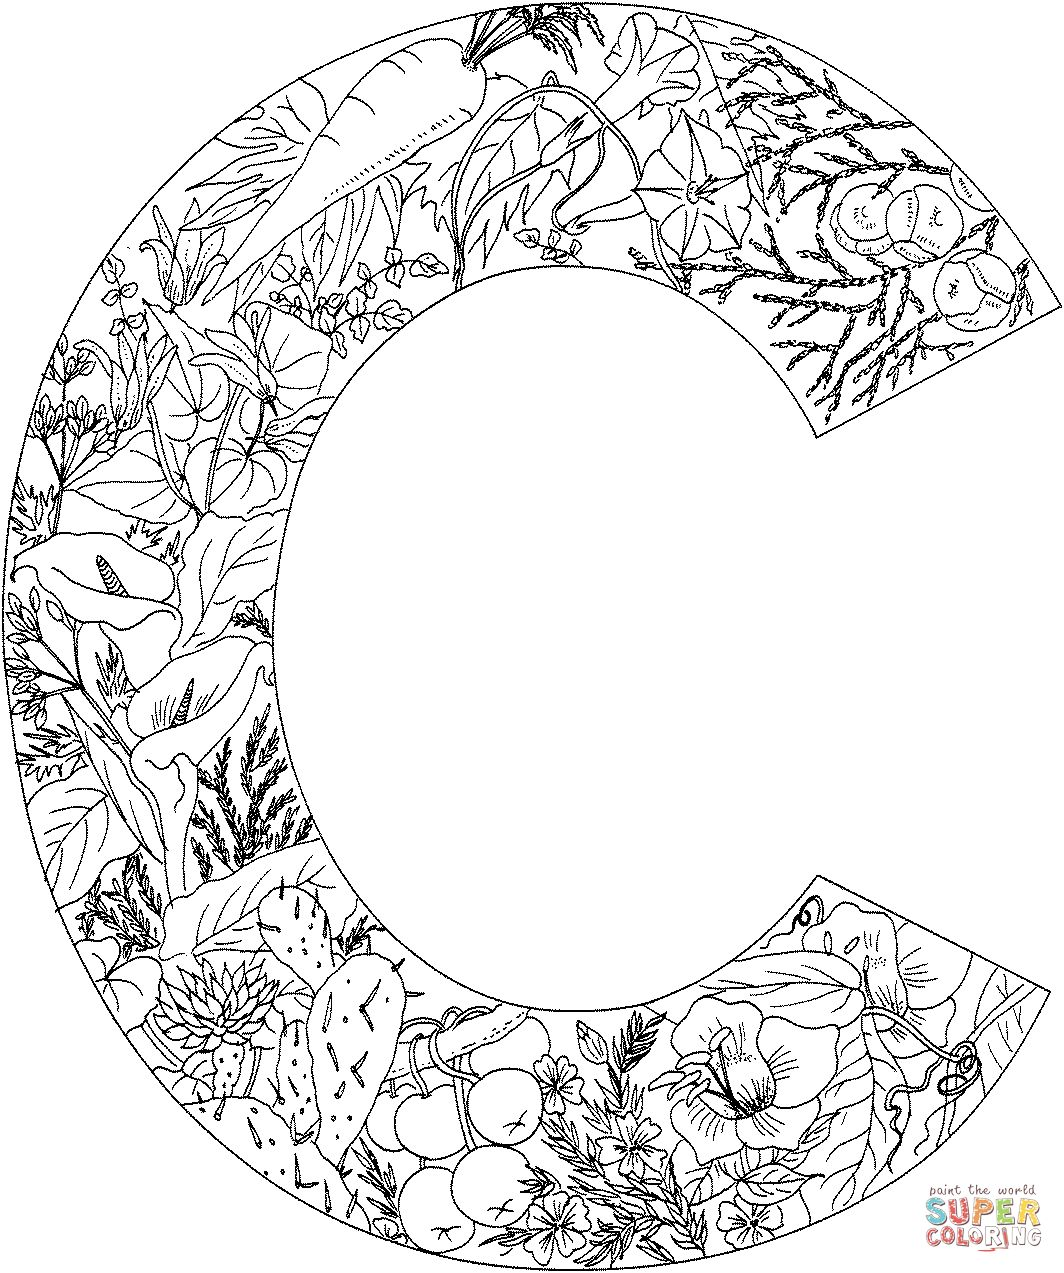 coloring pictures hard really hard coloring pages timeless miraclecom pictures hard coloring